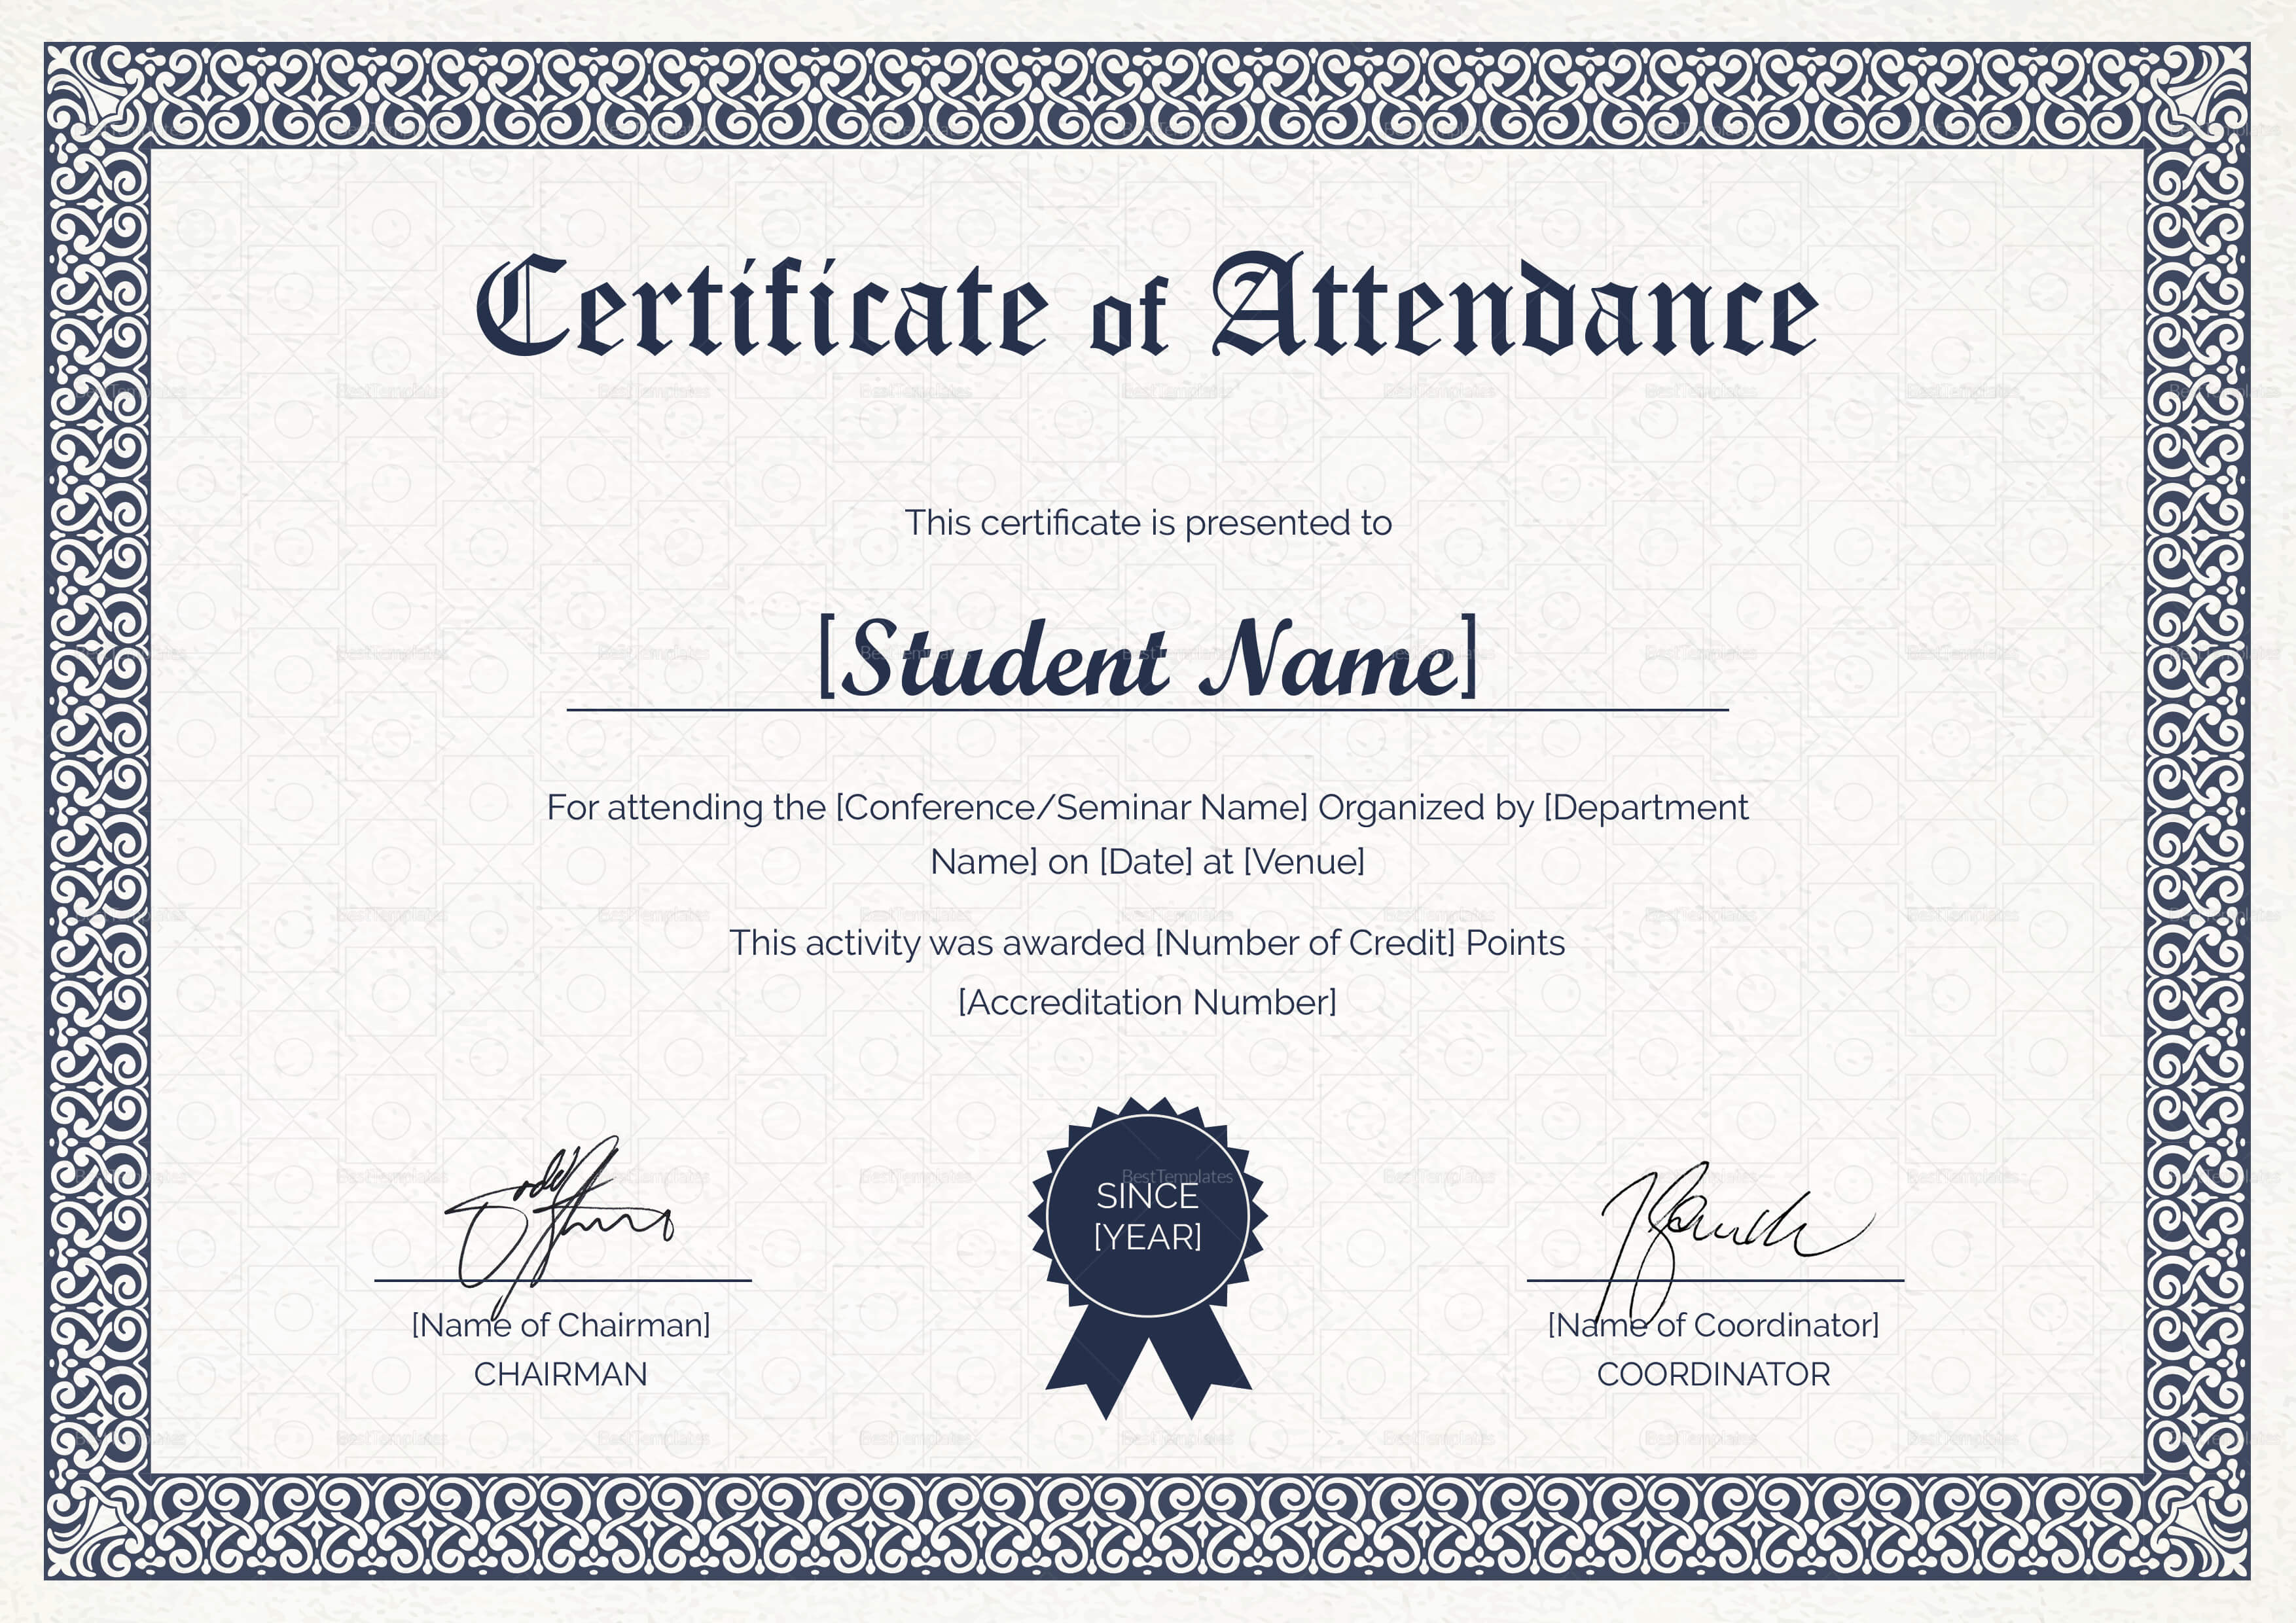 Students Attendance Certificate Template with regard to Conference Certificate Of Attendance Template